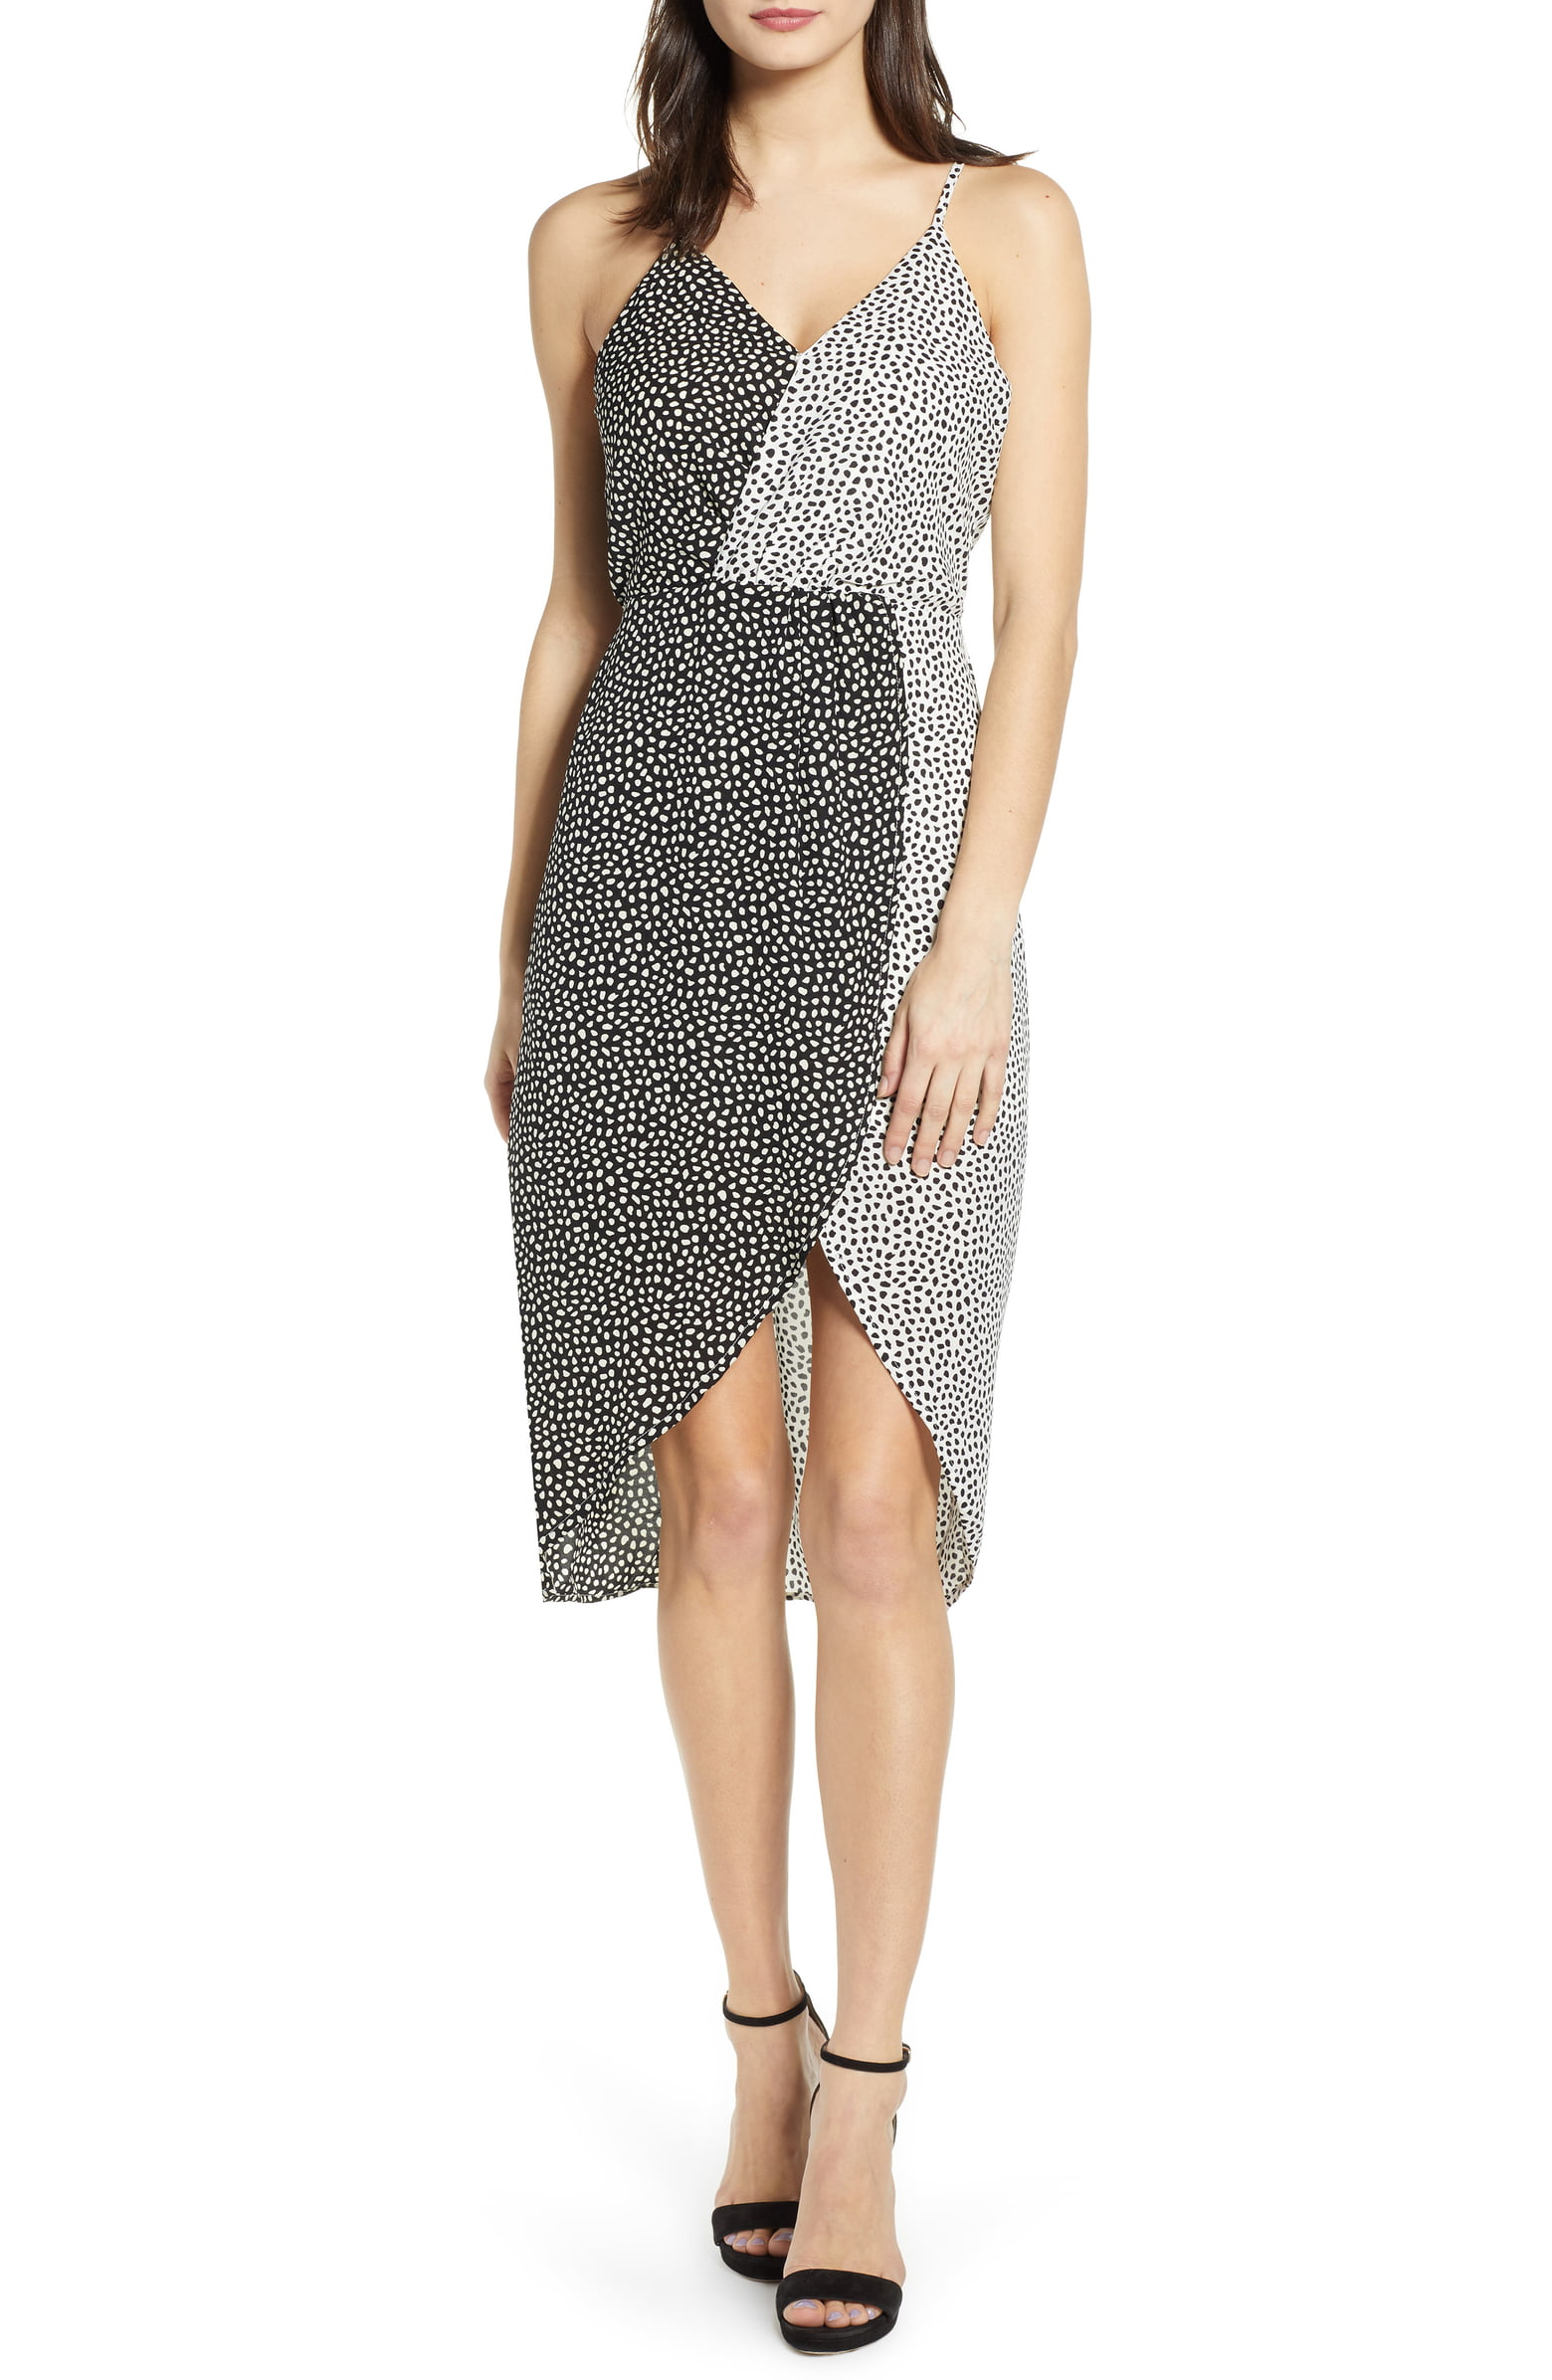 joa contrast dress - shop here